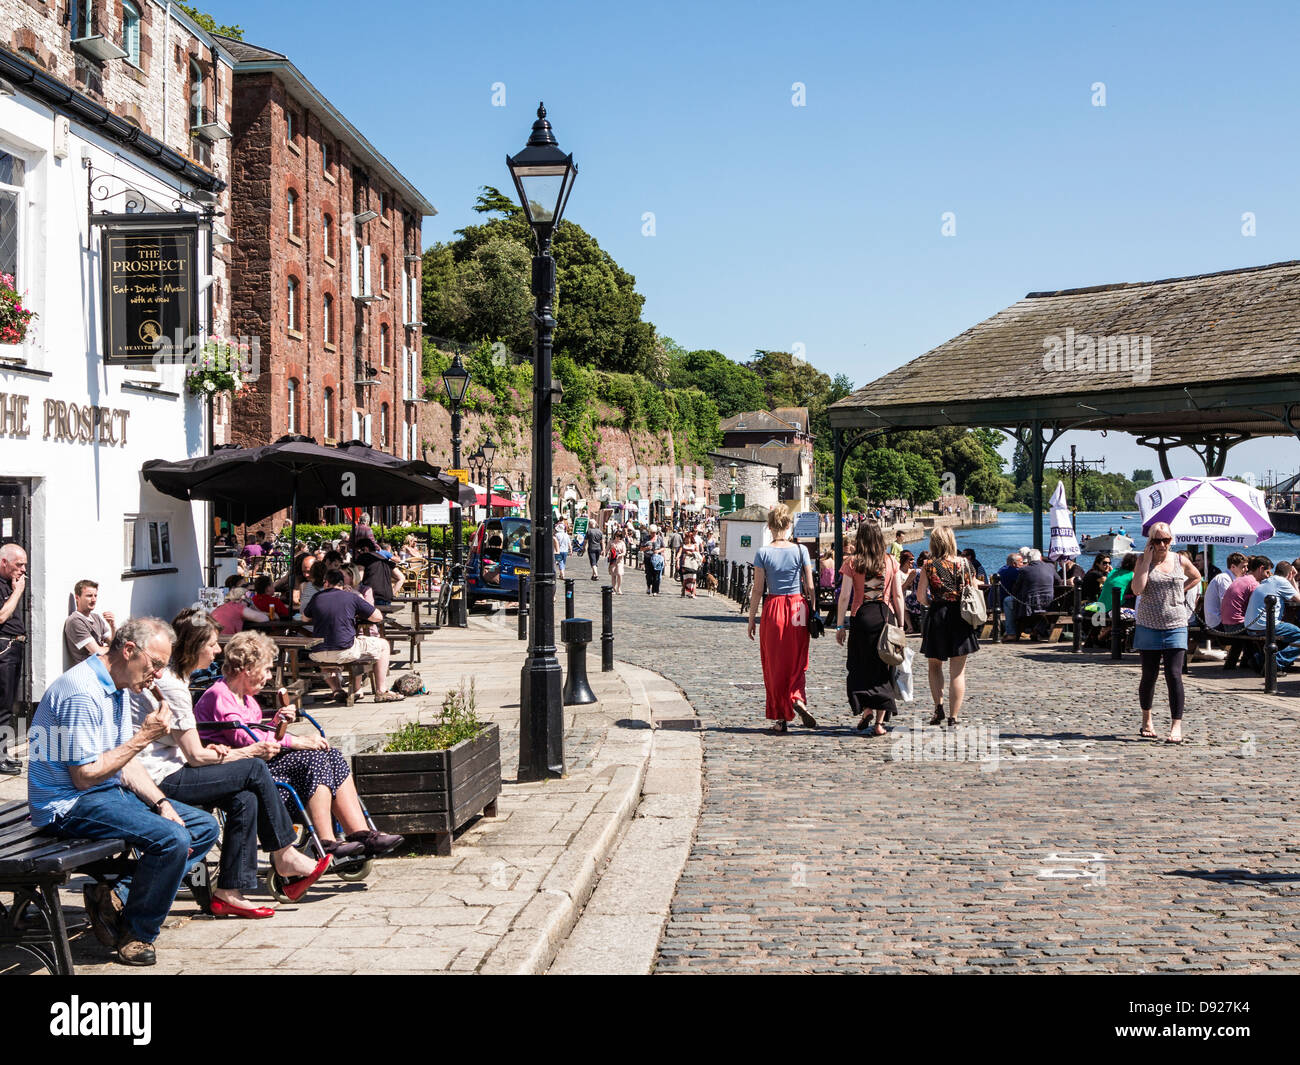 The Prospect Pub on Exeter Quay during the summer, Exeter, Devon, England - Stock Image